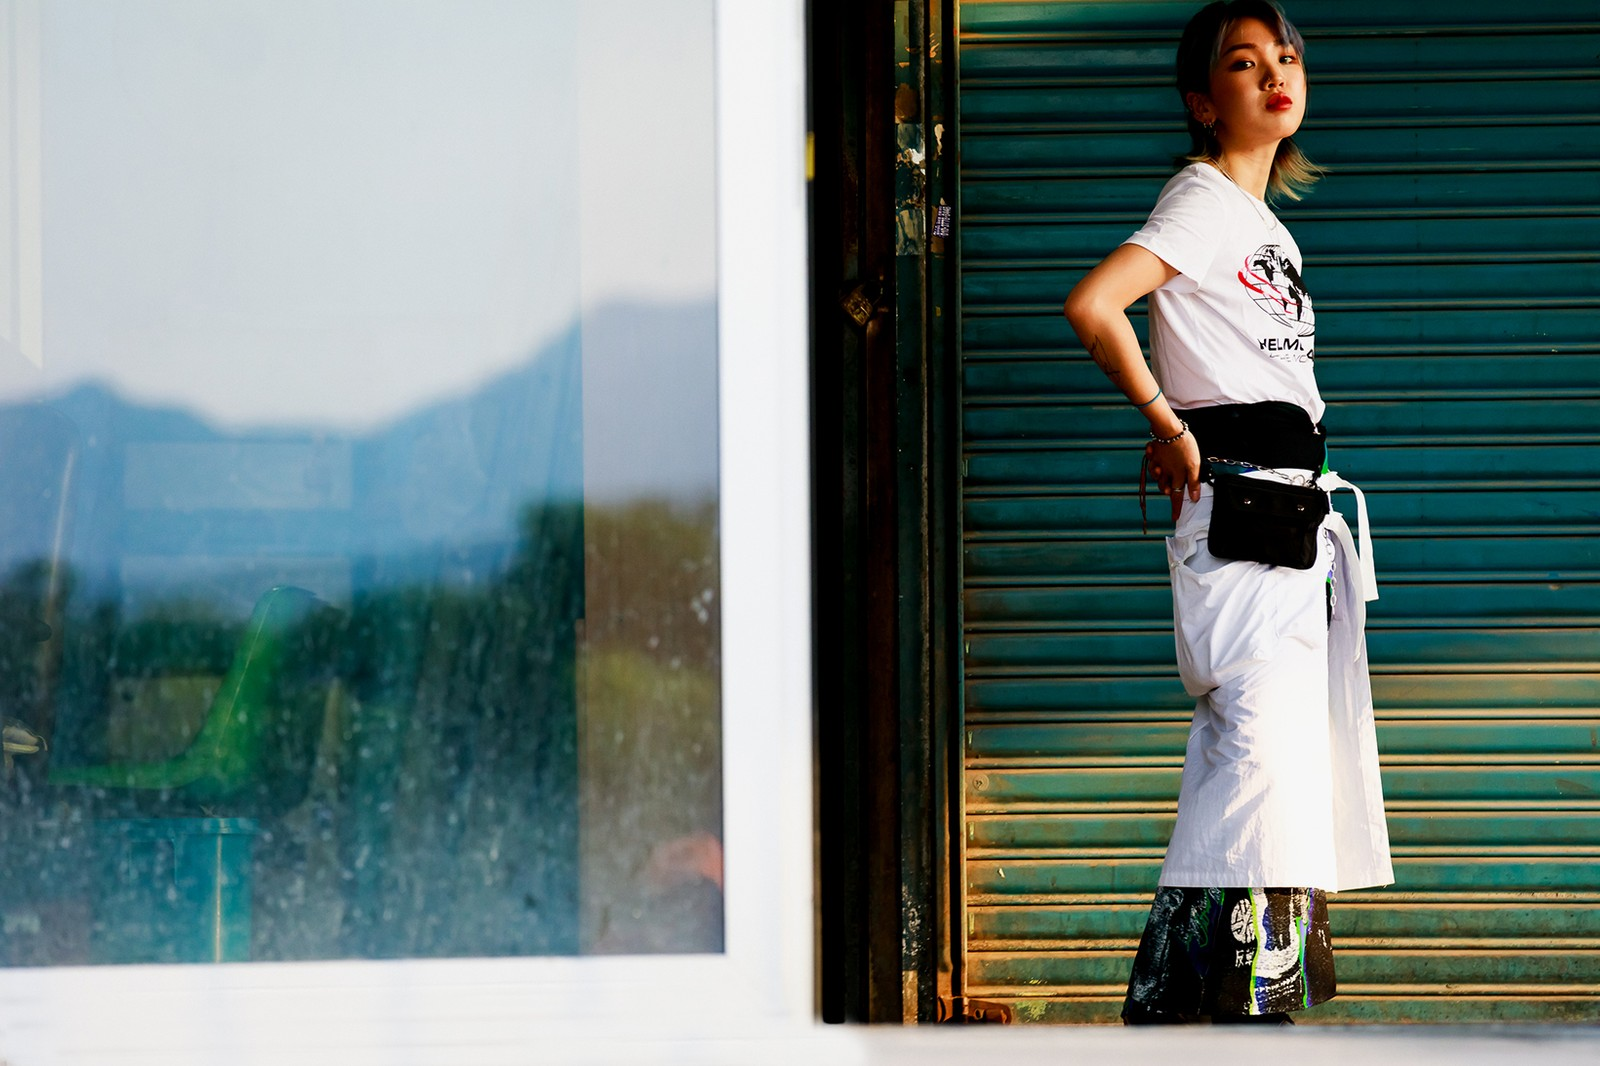 Nara Kim Stylist LGBTQ+ South Korea Seoul Queer Creative Industry Interview